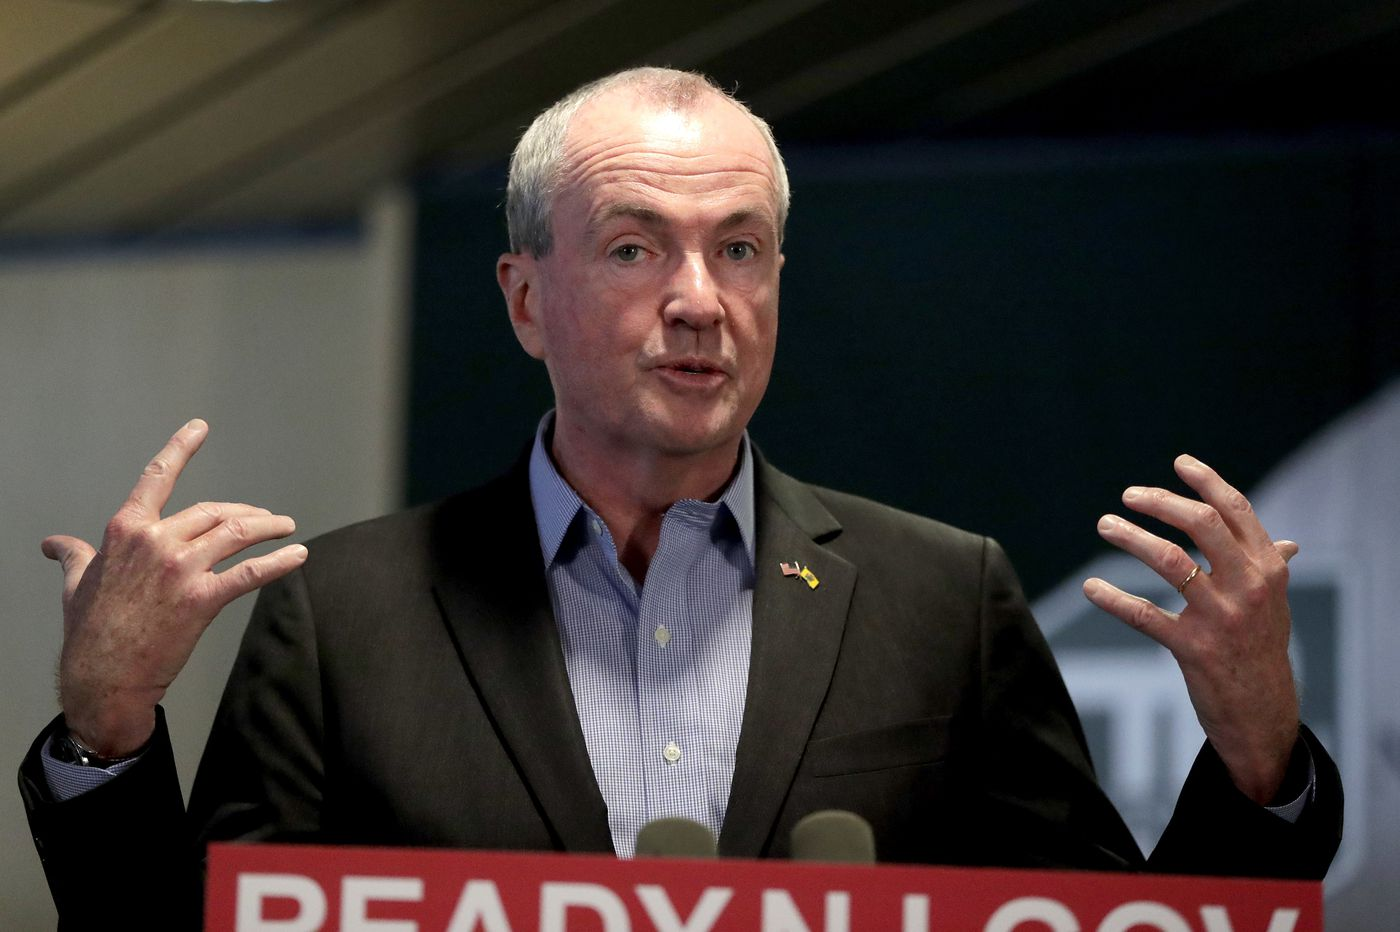 N.J. lawmakers grill Gov. Murphy aides over handling of sexual assault allegations